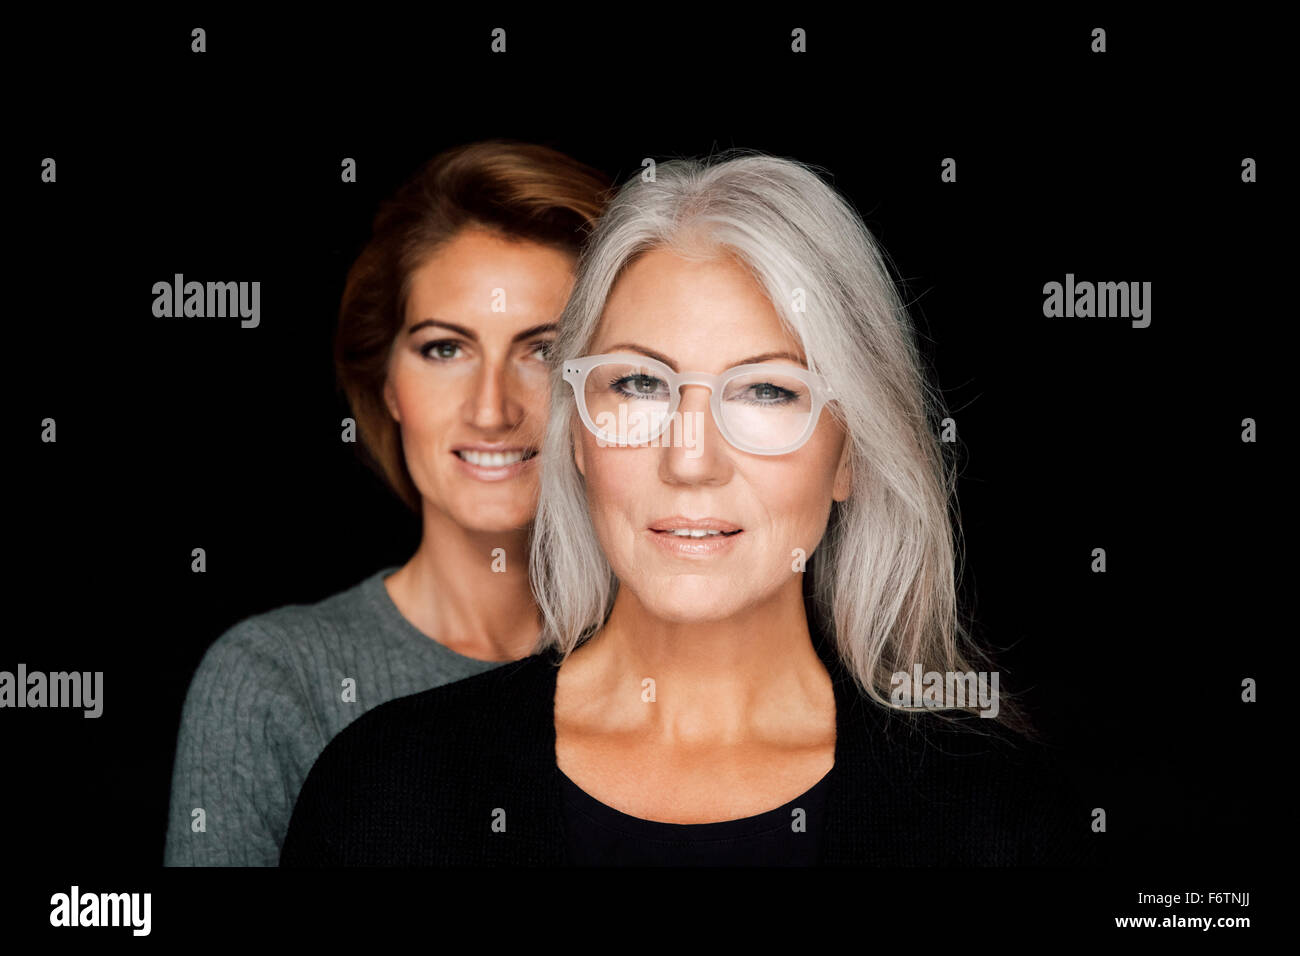 Portrait of mature woman and younger woman standing behind her in front of black background - Stock Image